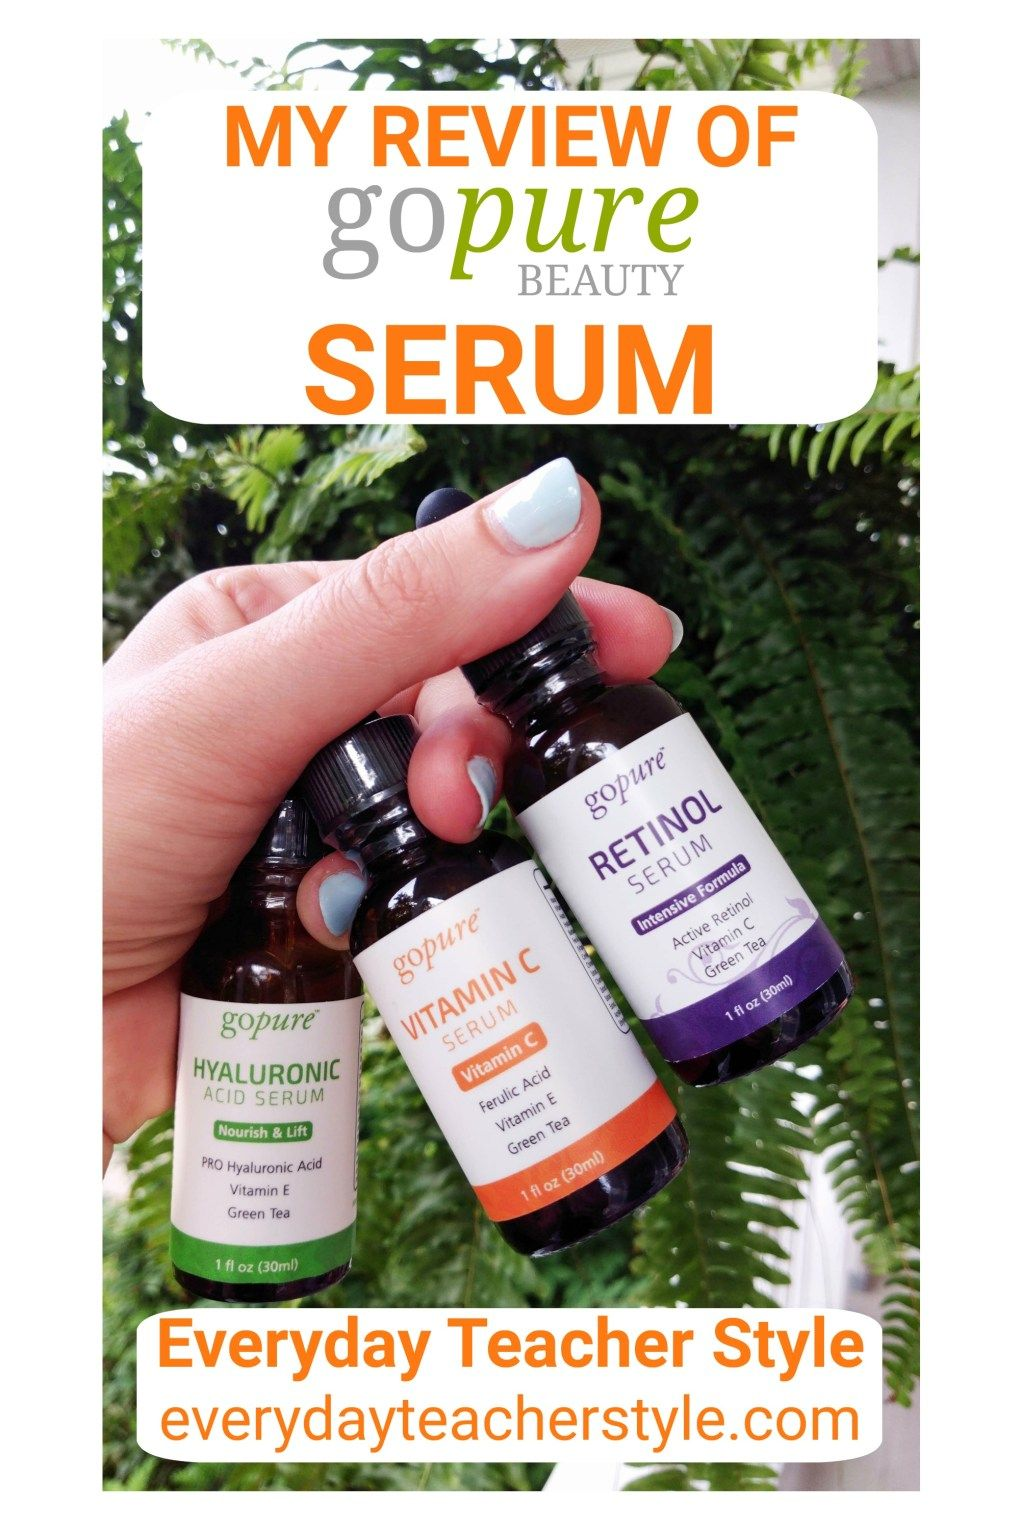 gopure beauty serum review Beauty serums, Pure skin care